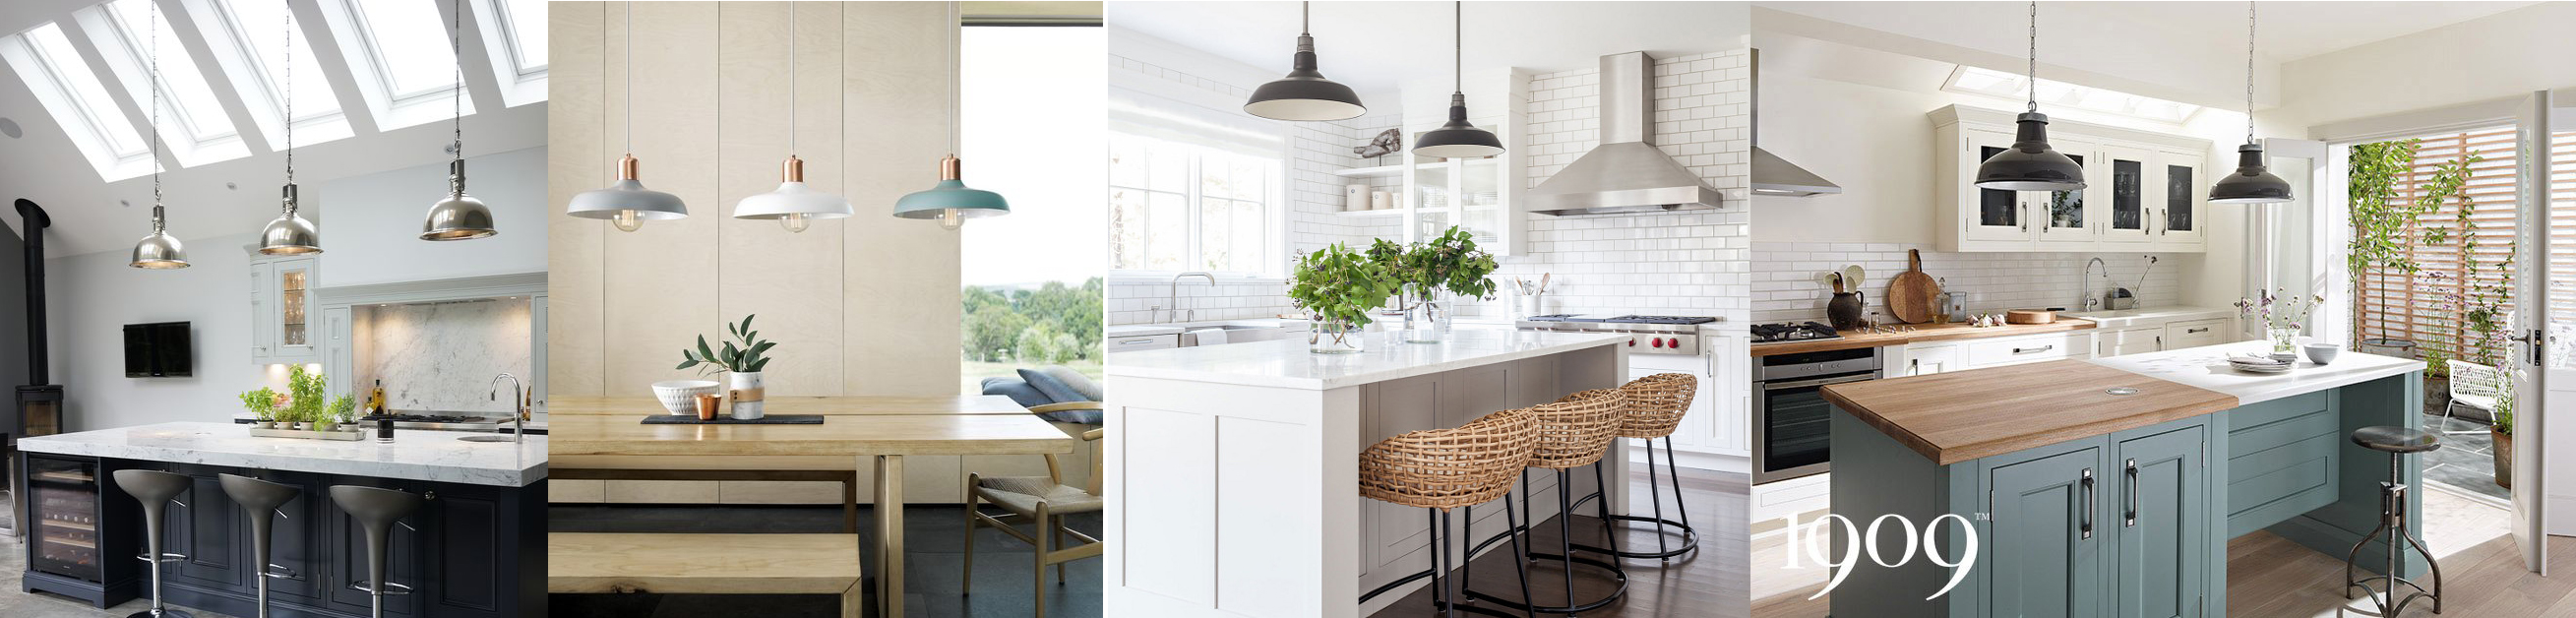 Kitchen Lighting Considerations | Create a Well Lit Masterpiece |